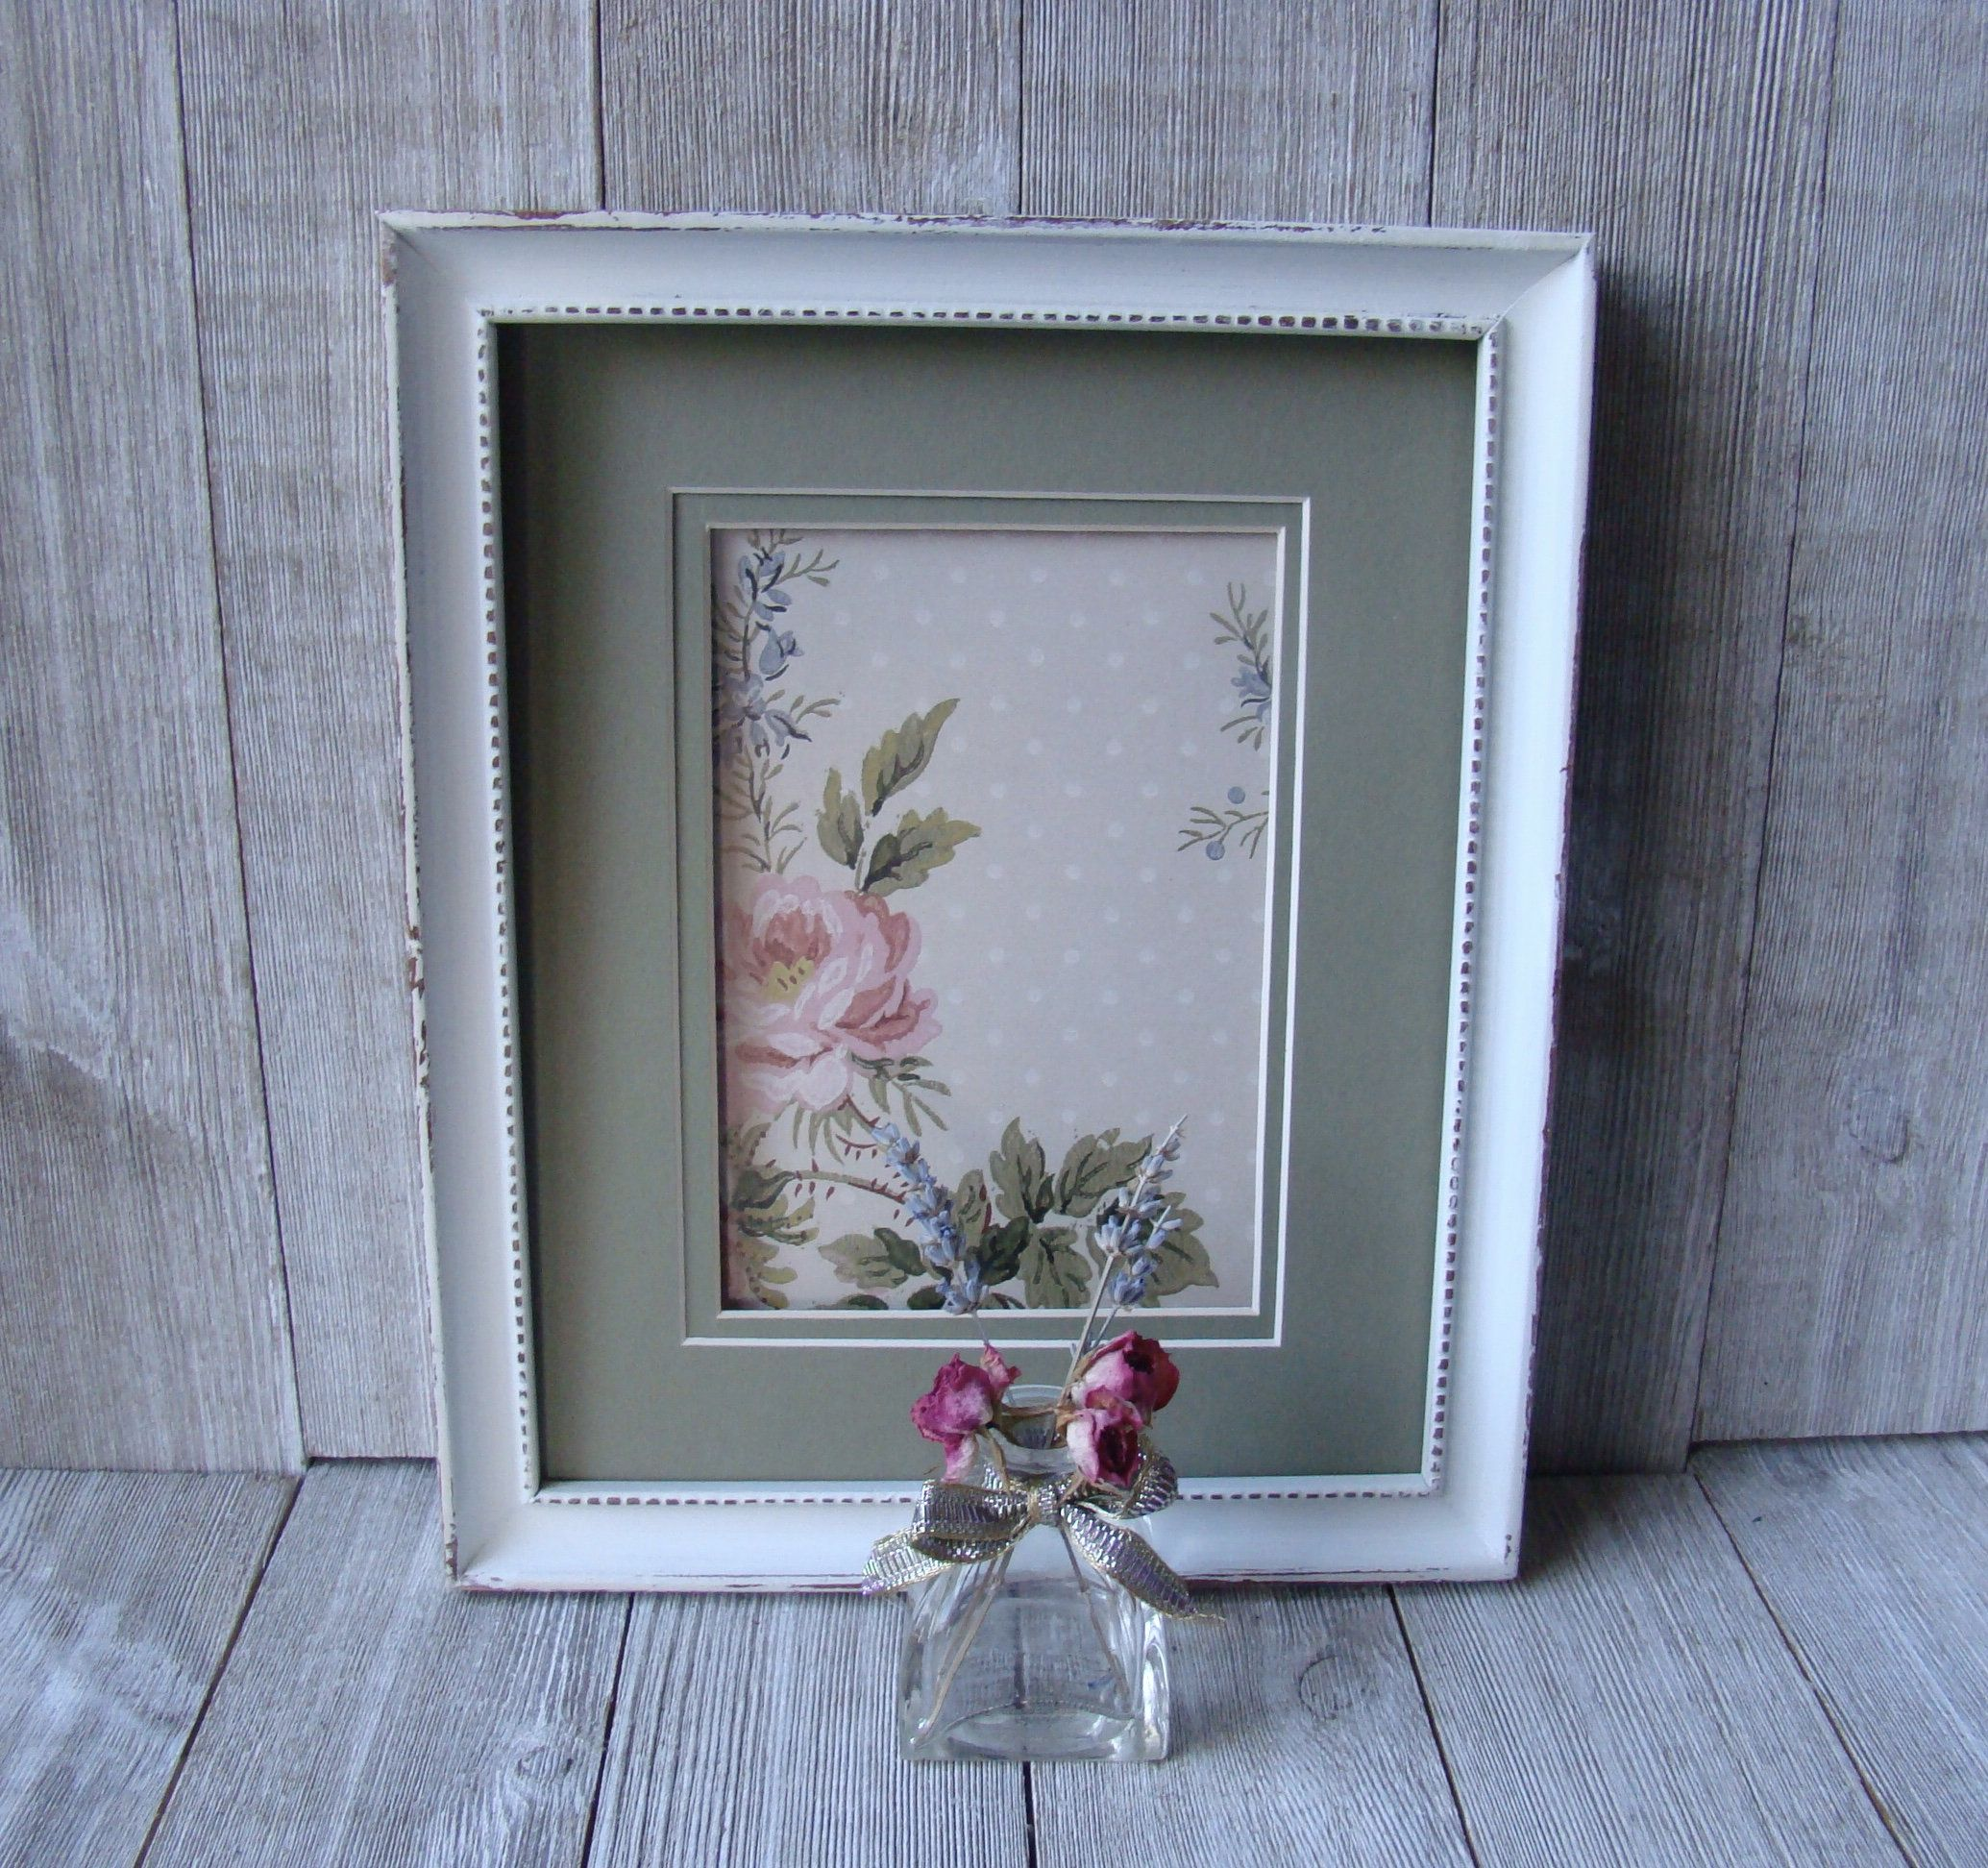 Distressed 8 X 10 Ornate White Picture Frame With Double 5 X 7 Etsy In 2020 White Picture Frames Picture Frames White Picture